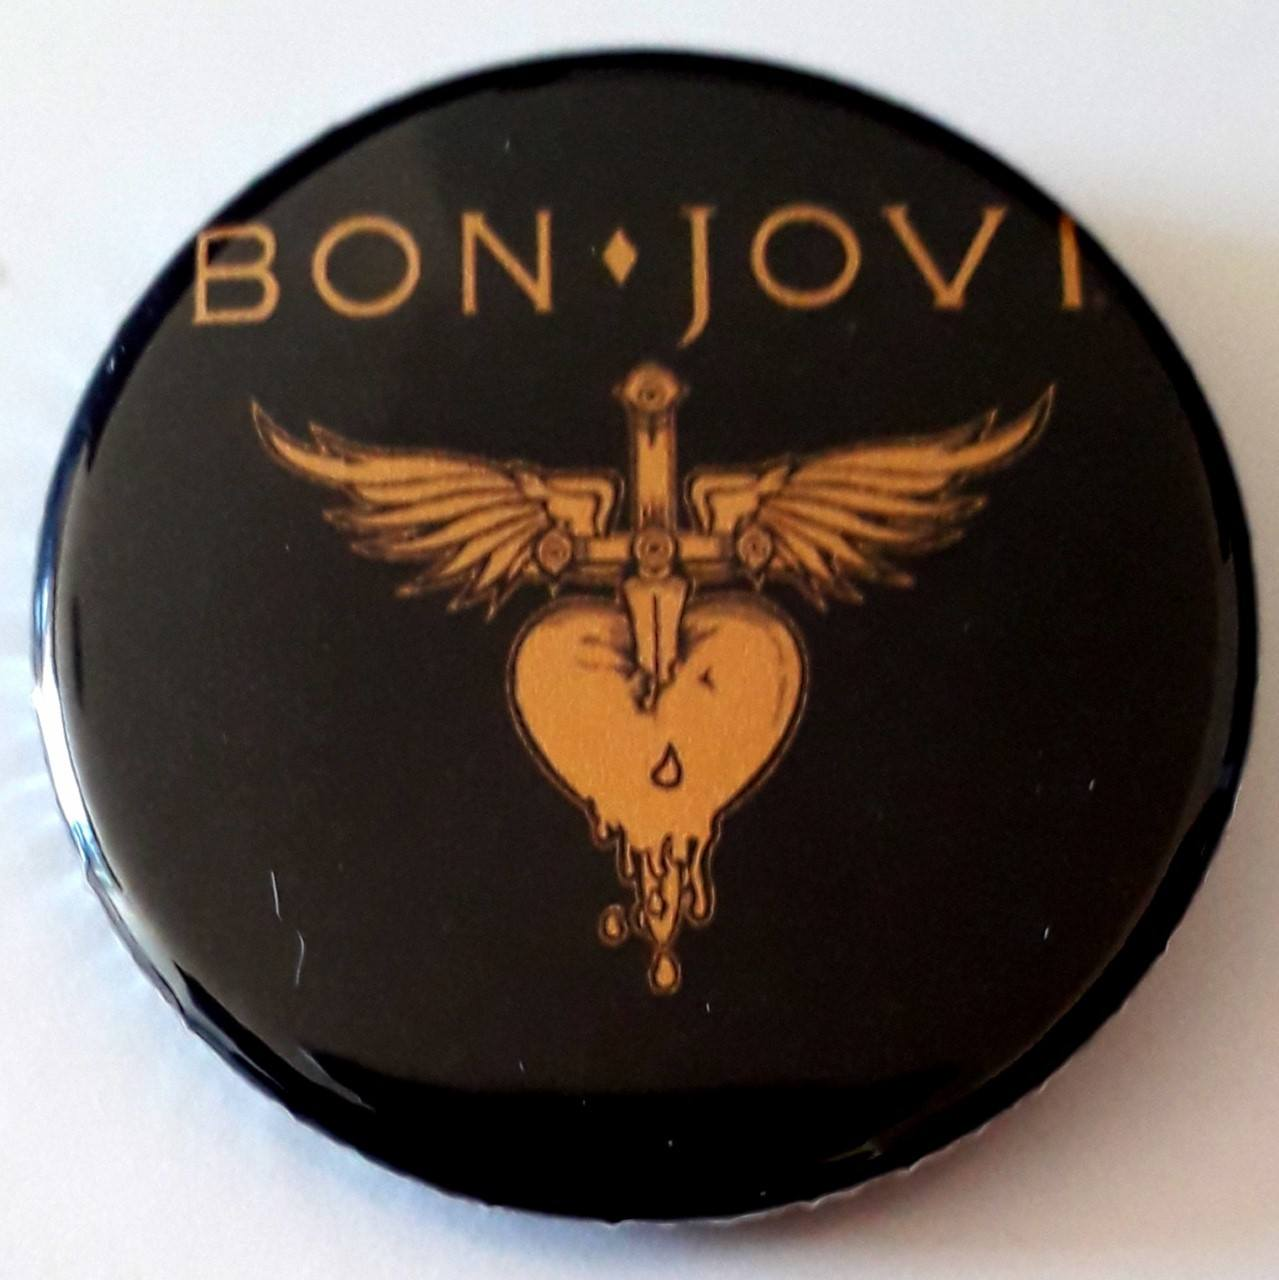 Botton Favartes Bon Jovi